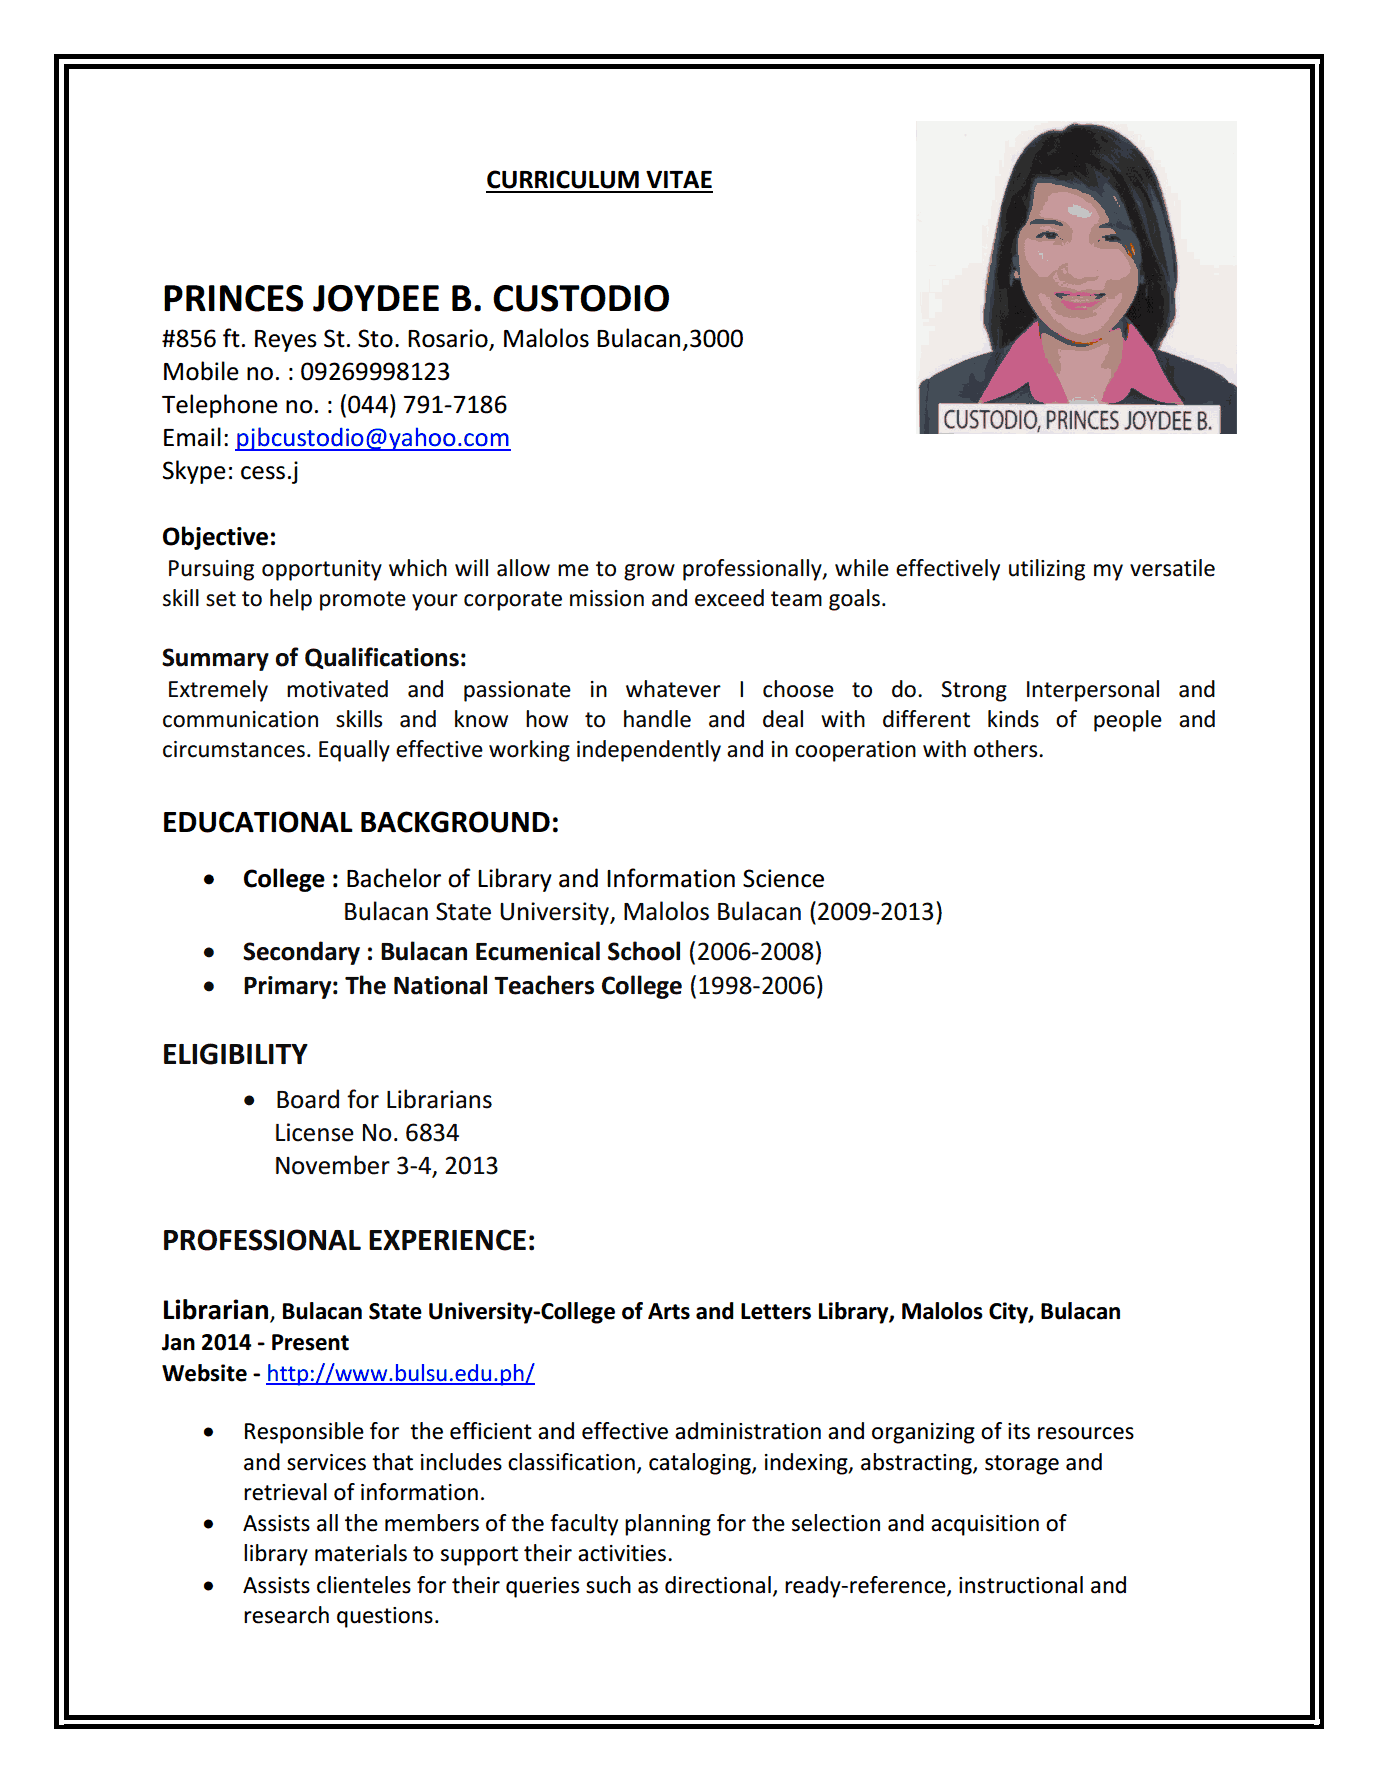 custodio1 custodio2 custodio3 - Librarian Resume Sample